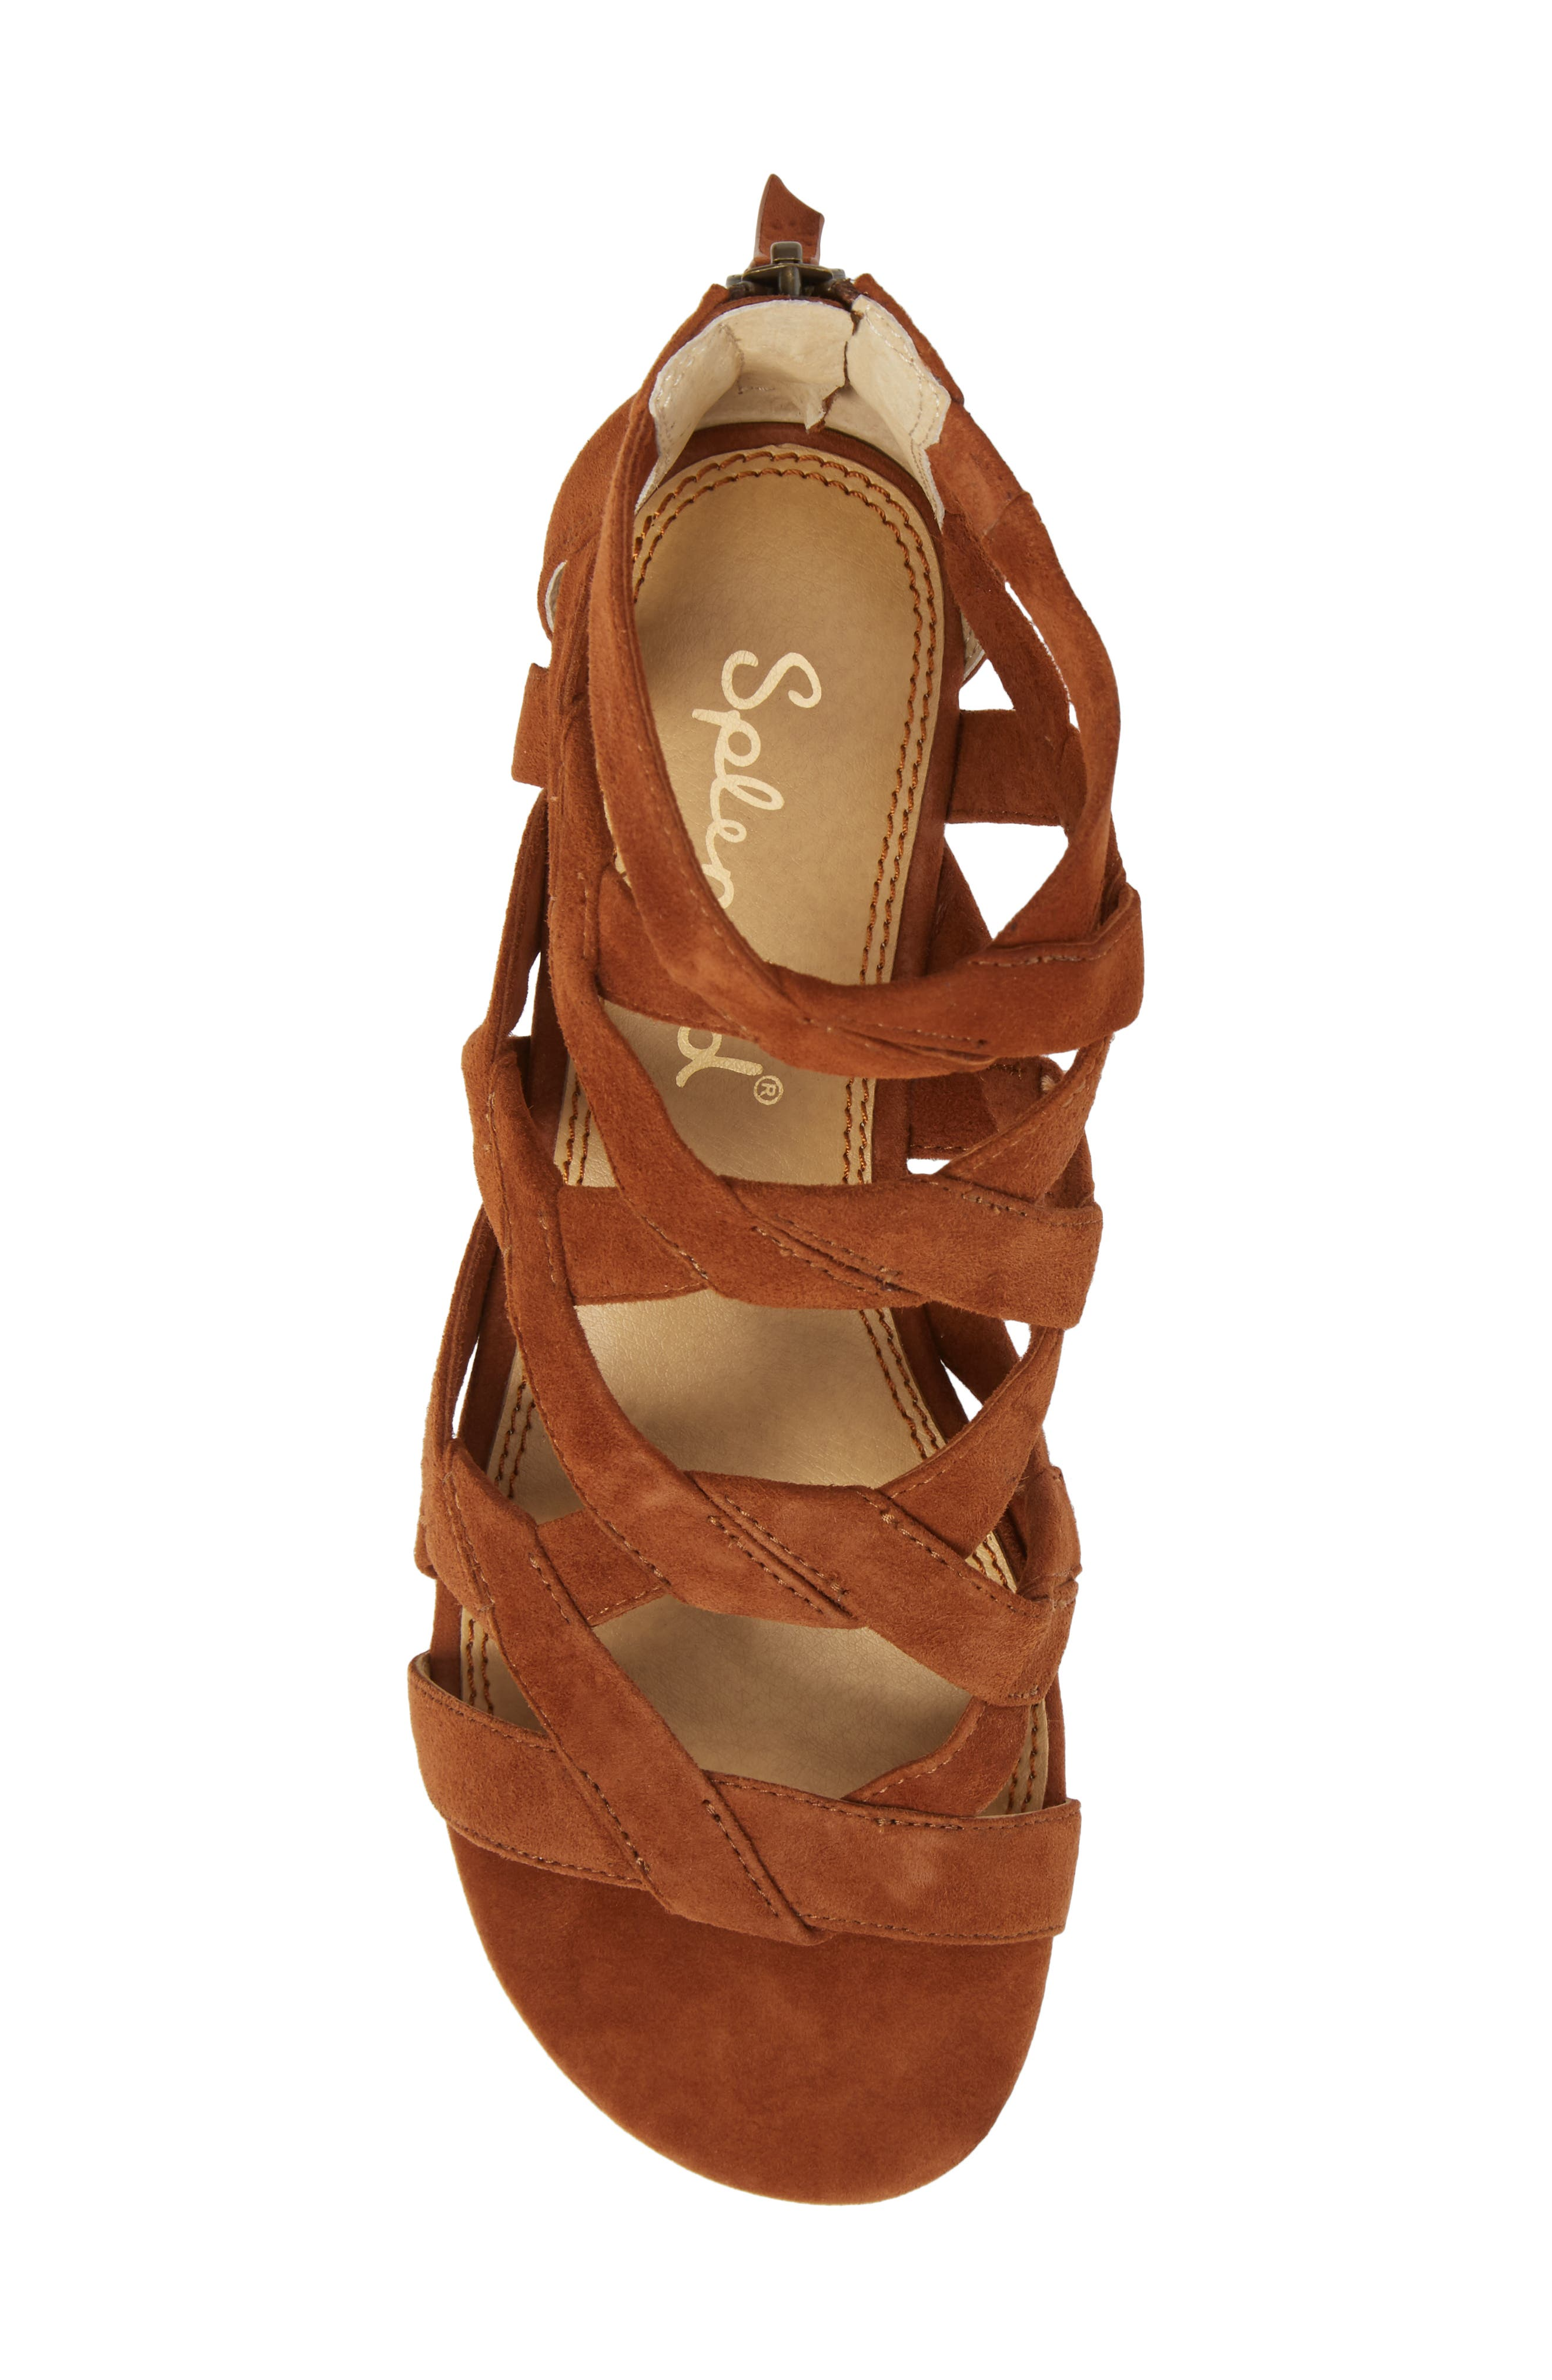 Barrett Mid Top Cage Sandal,                             Alternate thumbnail 5, color,                             Caramel Suede